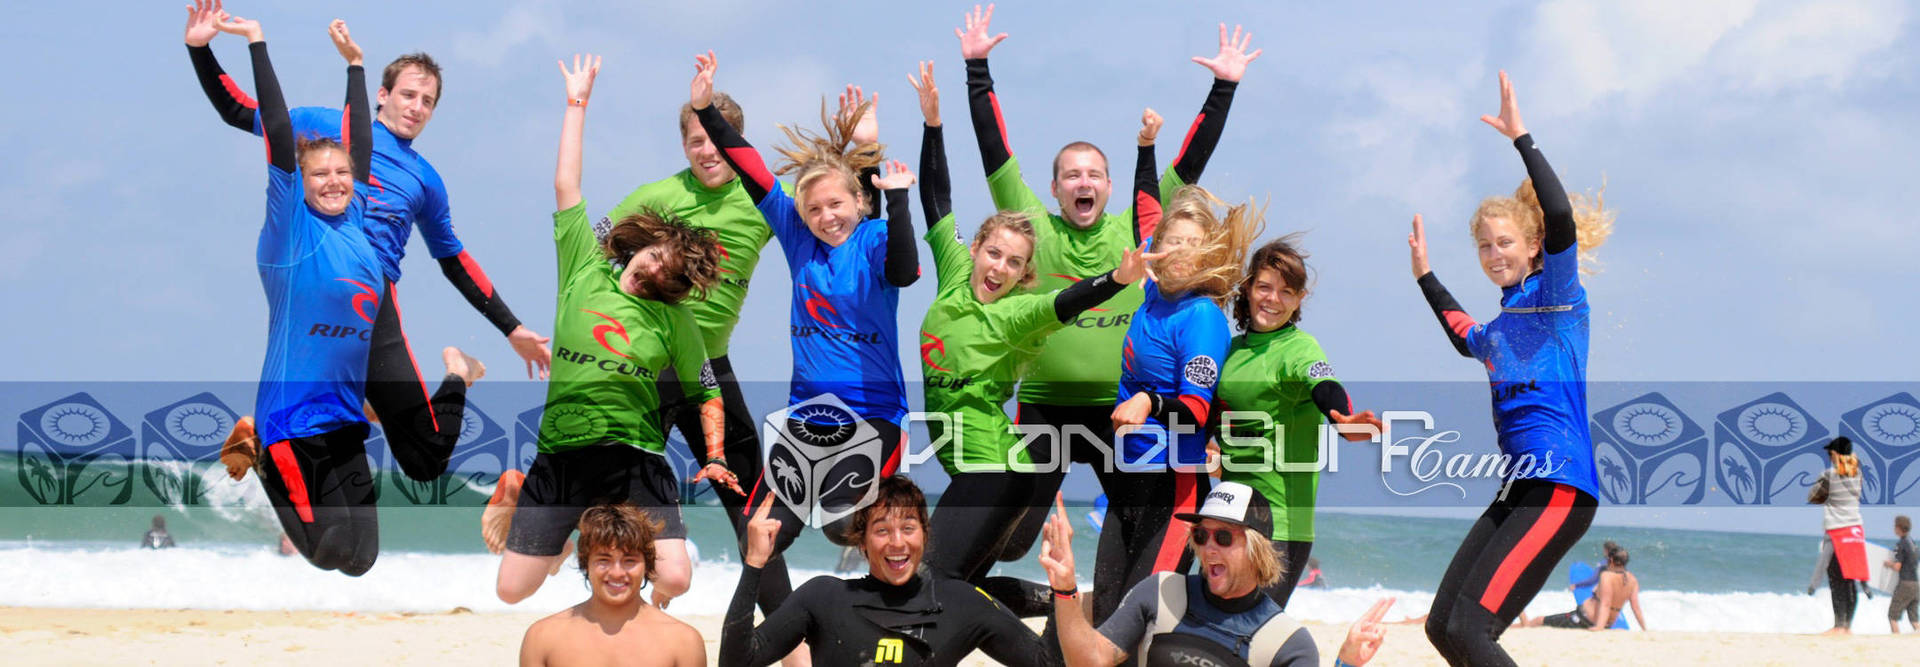 Planet Surfcamps